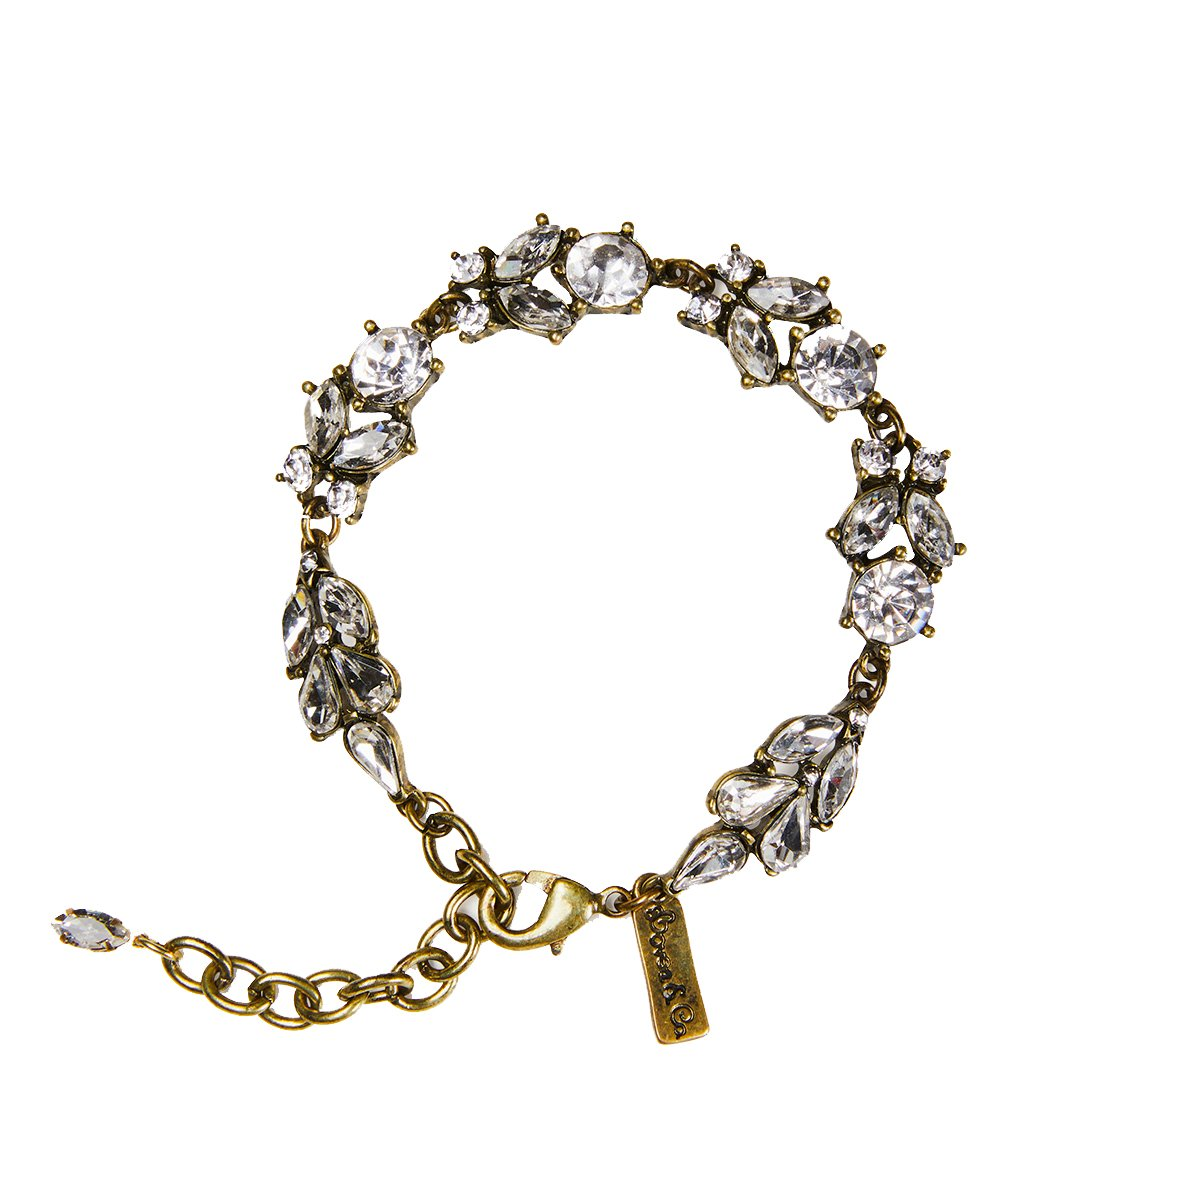 Adorn yourself with our Authentic styled Antique style Bracelet with its Faceted Foliage and Floral Inspired Design drawn from the 1920's.  This is a very special piece to be treasured forever. Hypoallergenic and Nickel free. Length 18cm, extender 6cm.